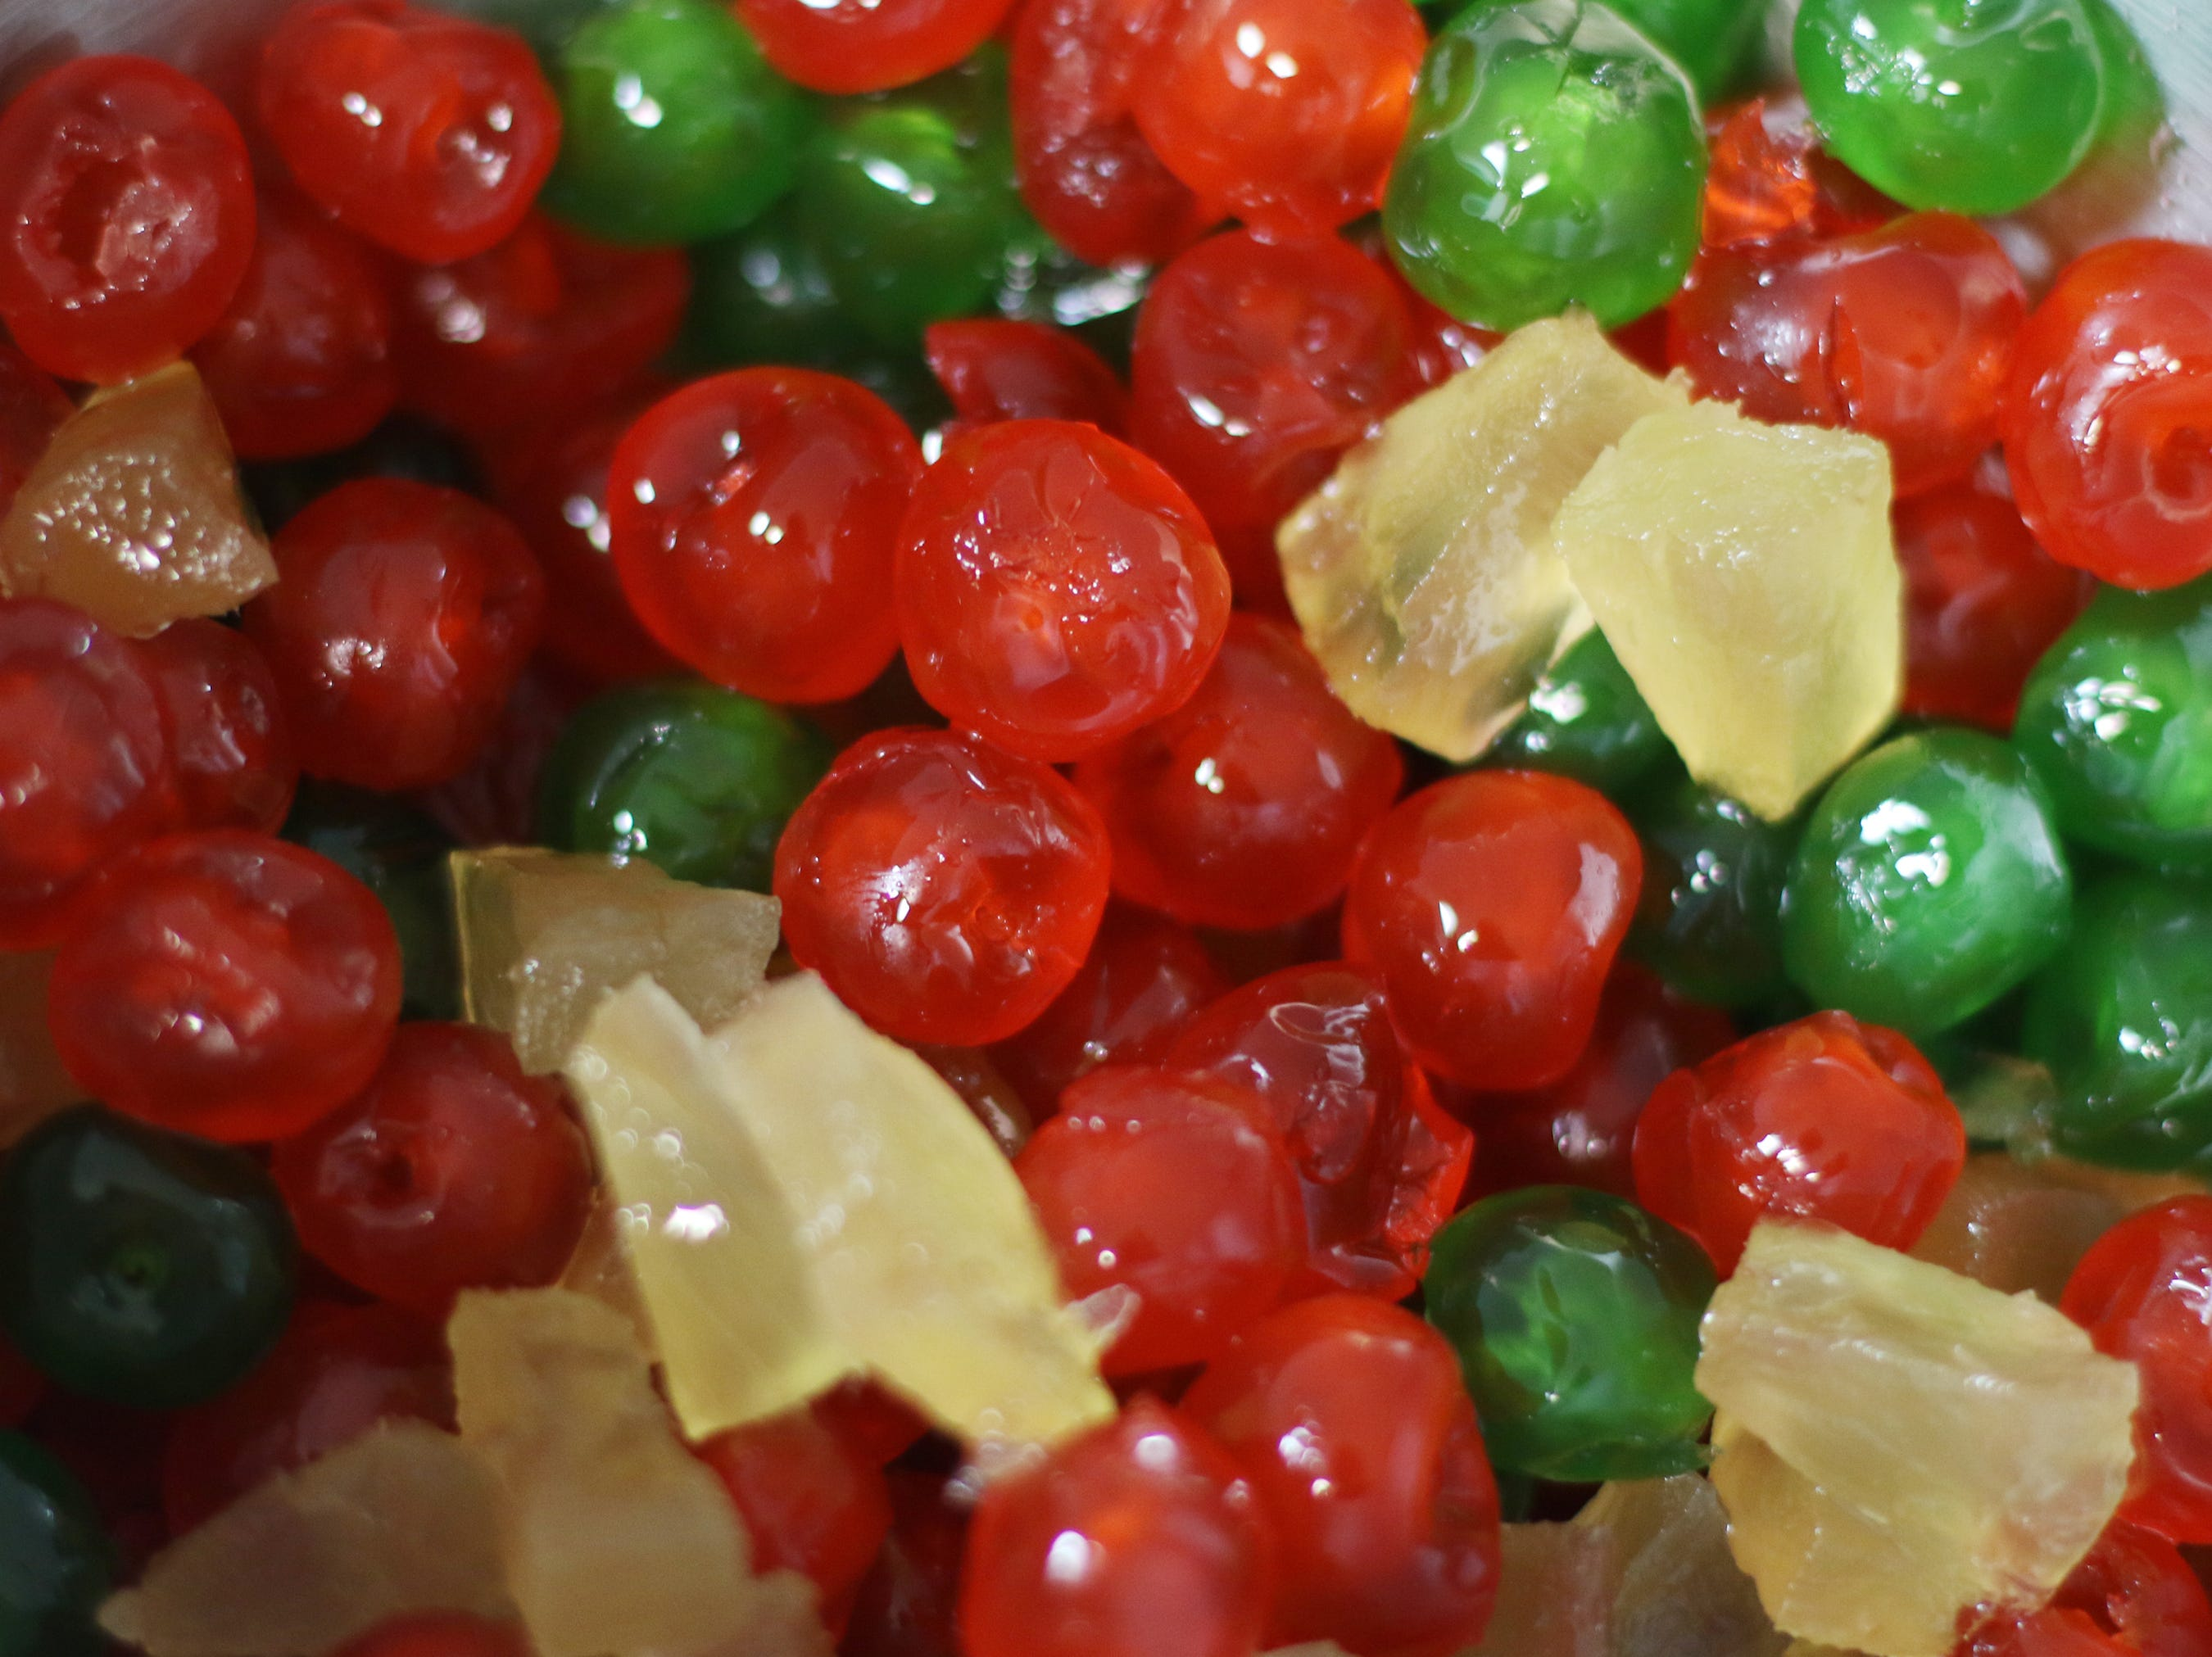 Candied fruits like these cherries and pineapple pieces became a traditional ingredient in a fruitcake because the high sugar content preserved the fruit. Shannon Tinsley, owner of SweetNanaCakes in Staunton, soaks the candied fruit in brandy and rum before baking it in a fruitcake.